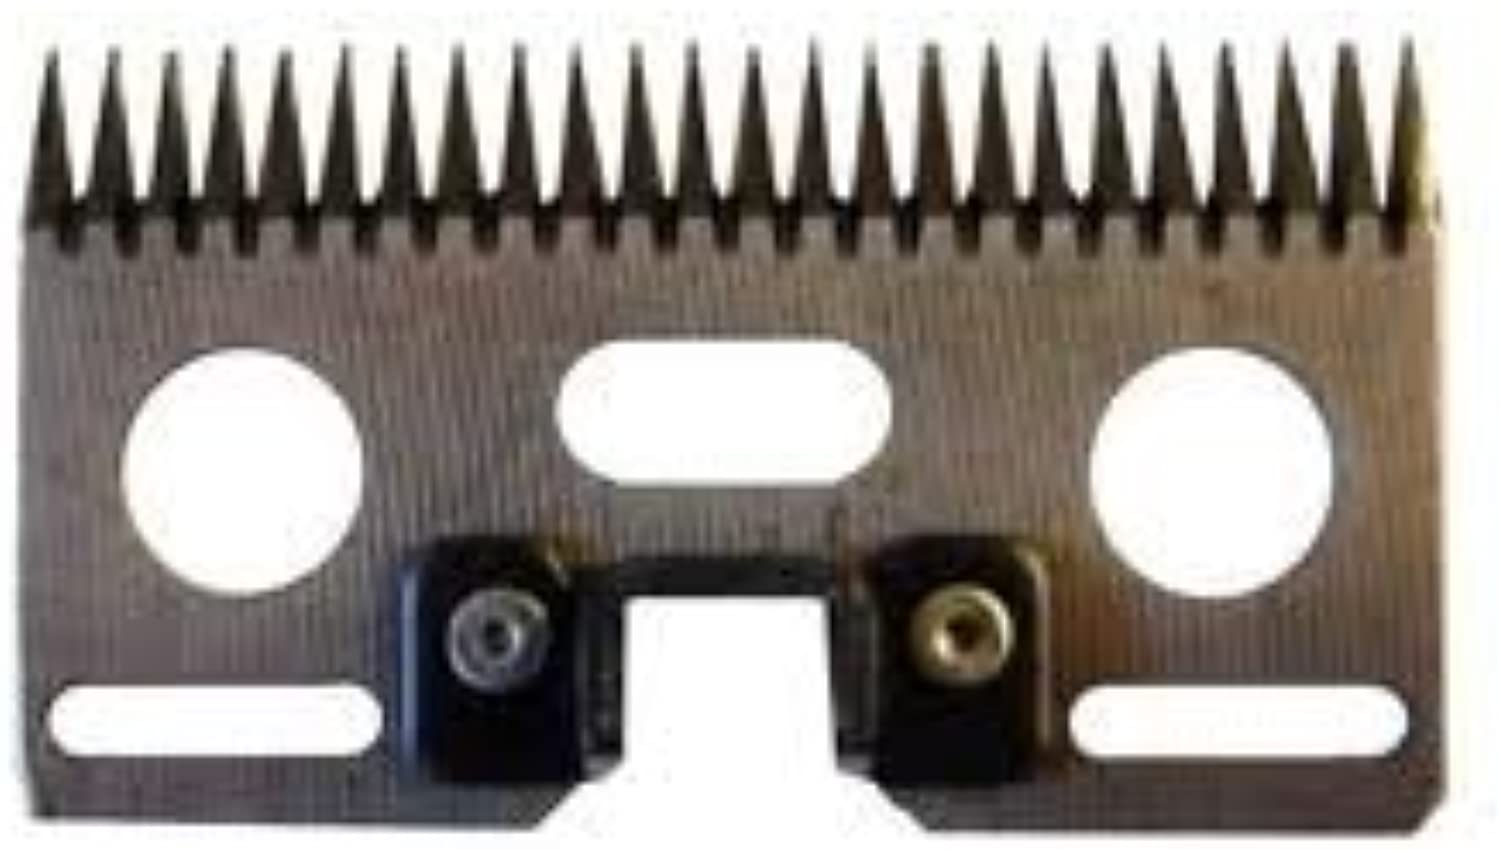 A22 Fine Clipper Liveryman Spare Blades For Horse   Animal Clipping, Coat length of 0.5mm